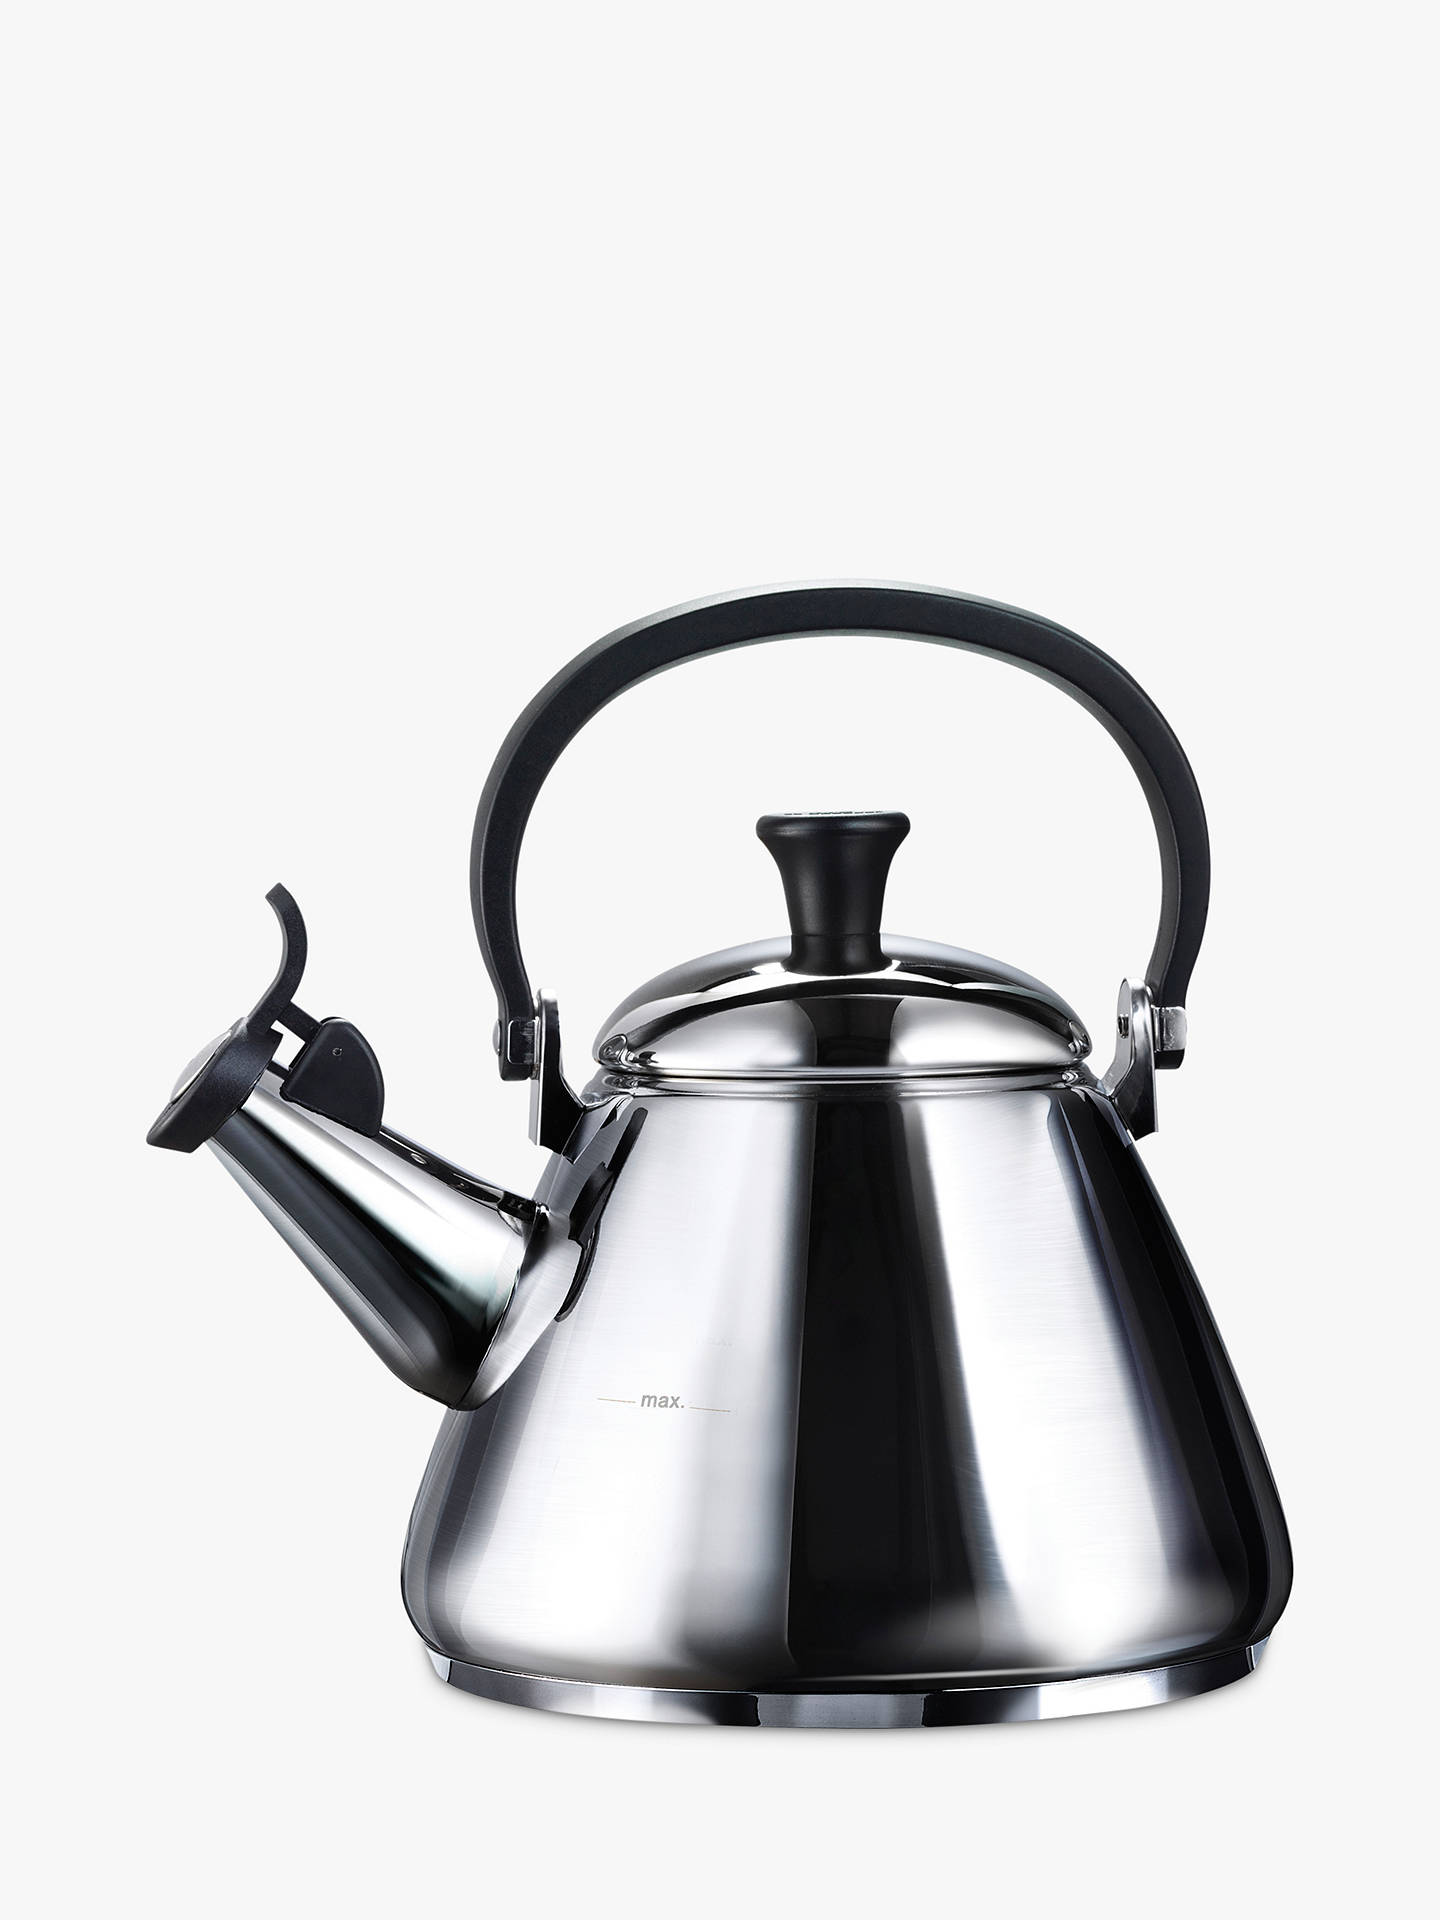 BuyLe Creuset Stainless Steel Kone Kettle, 1.6L Online at johnlewis.com